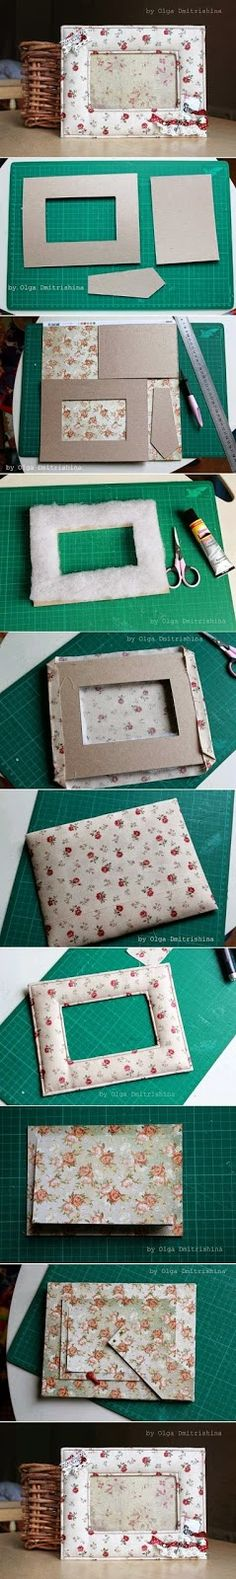 COOL DIY IDEAS: Easy Way To Make a Picture Frame